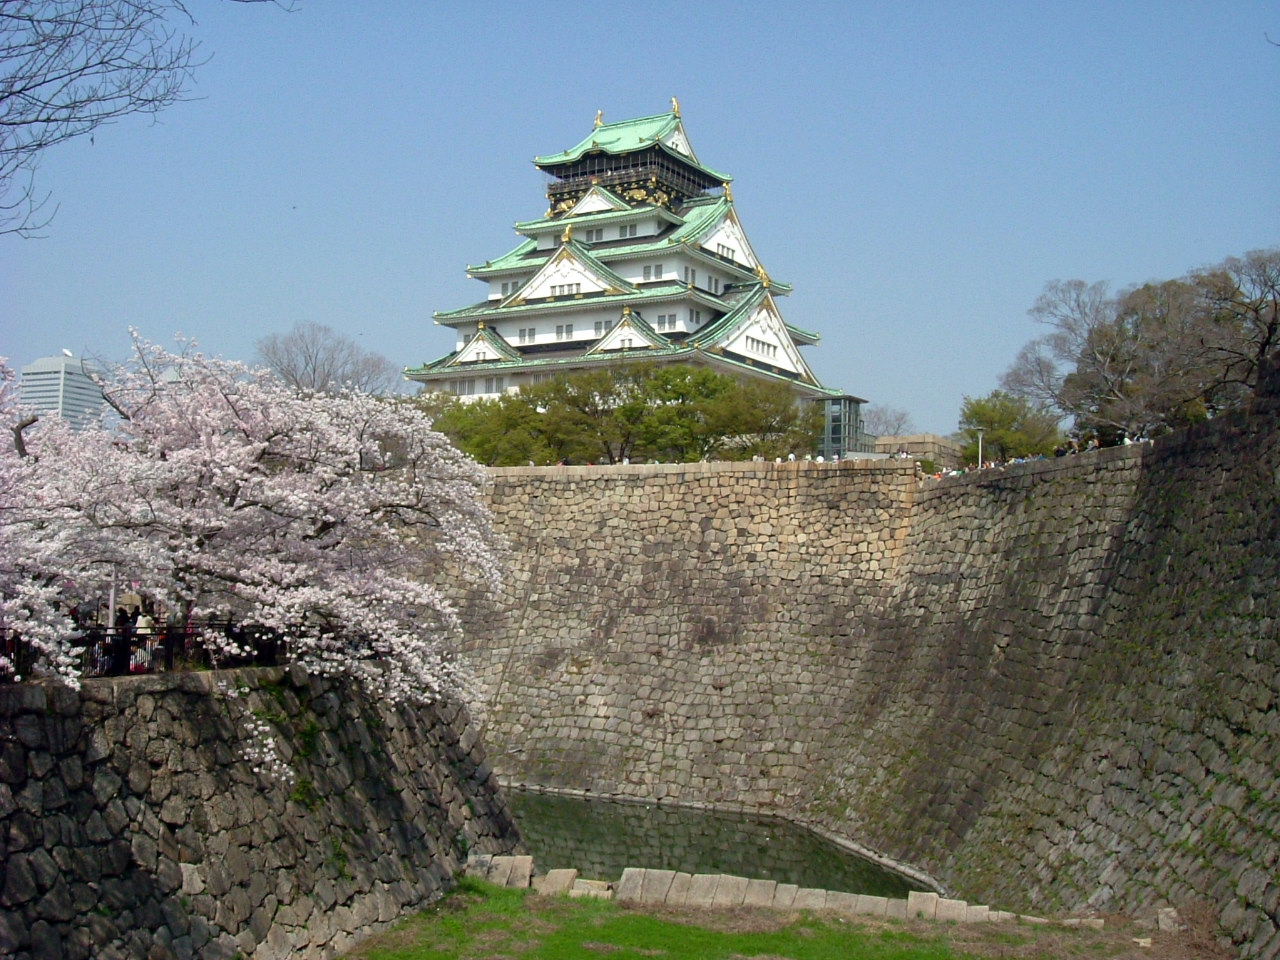 https://upload.wikimedia.org/wikipedia/commons/f/f6/Osaka_Castle_Sakura_April_2005.JPG